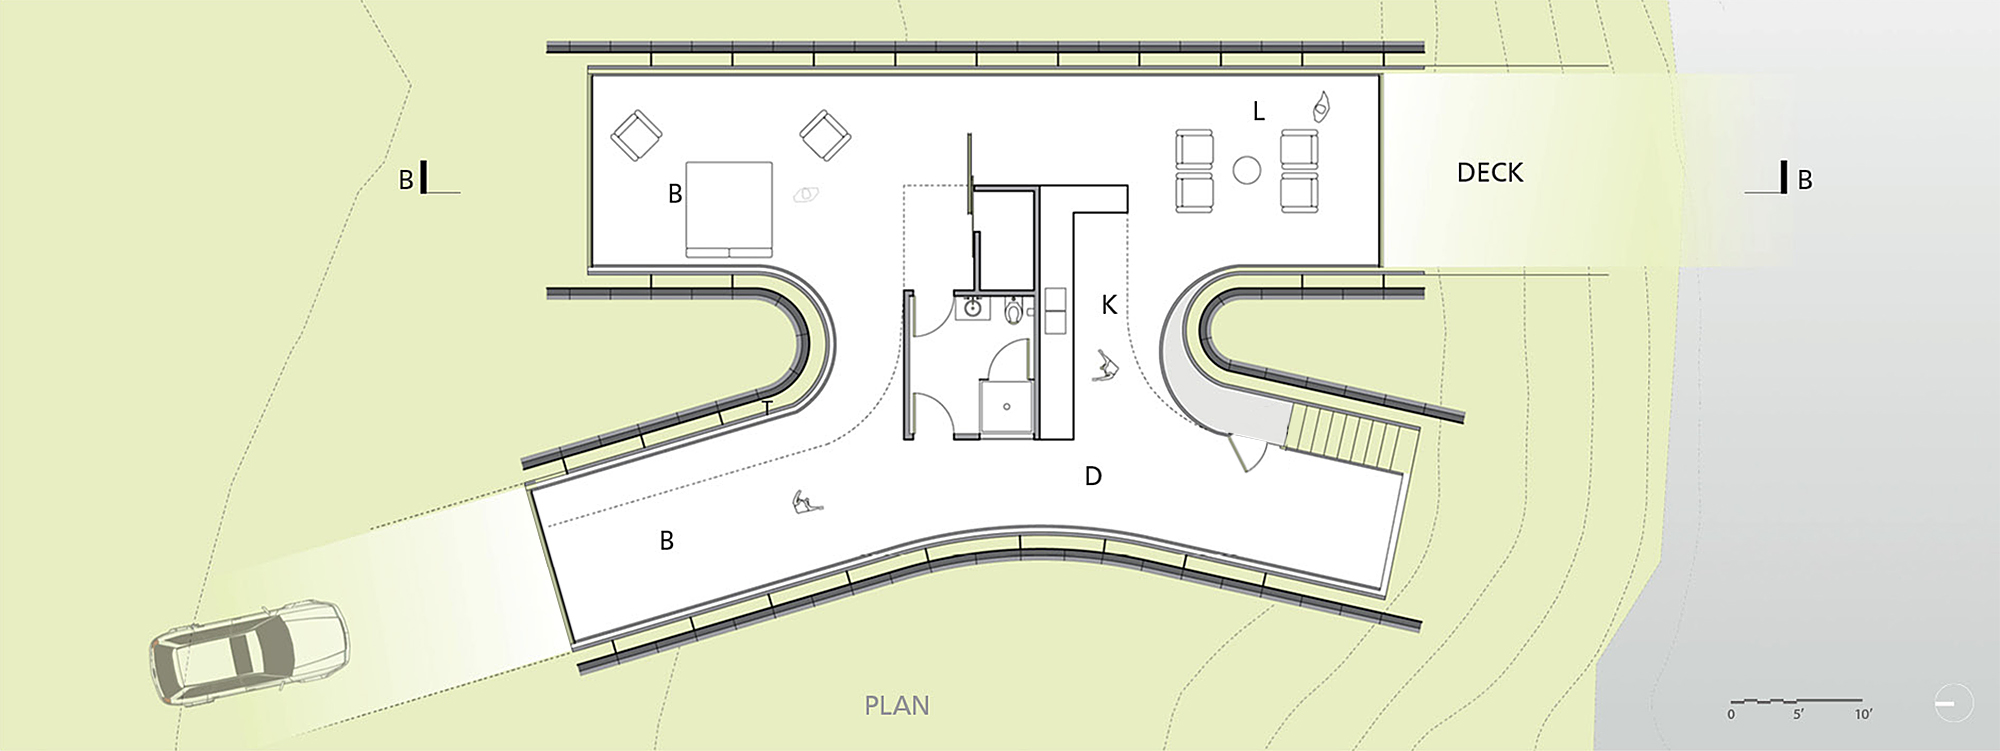 05_Cloakhouse_FloorPlan.jpg